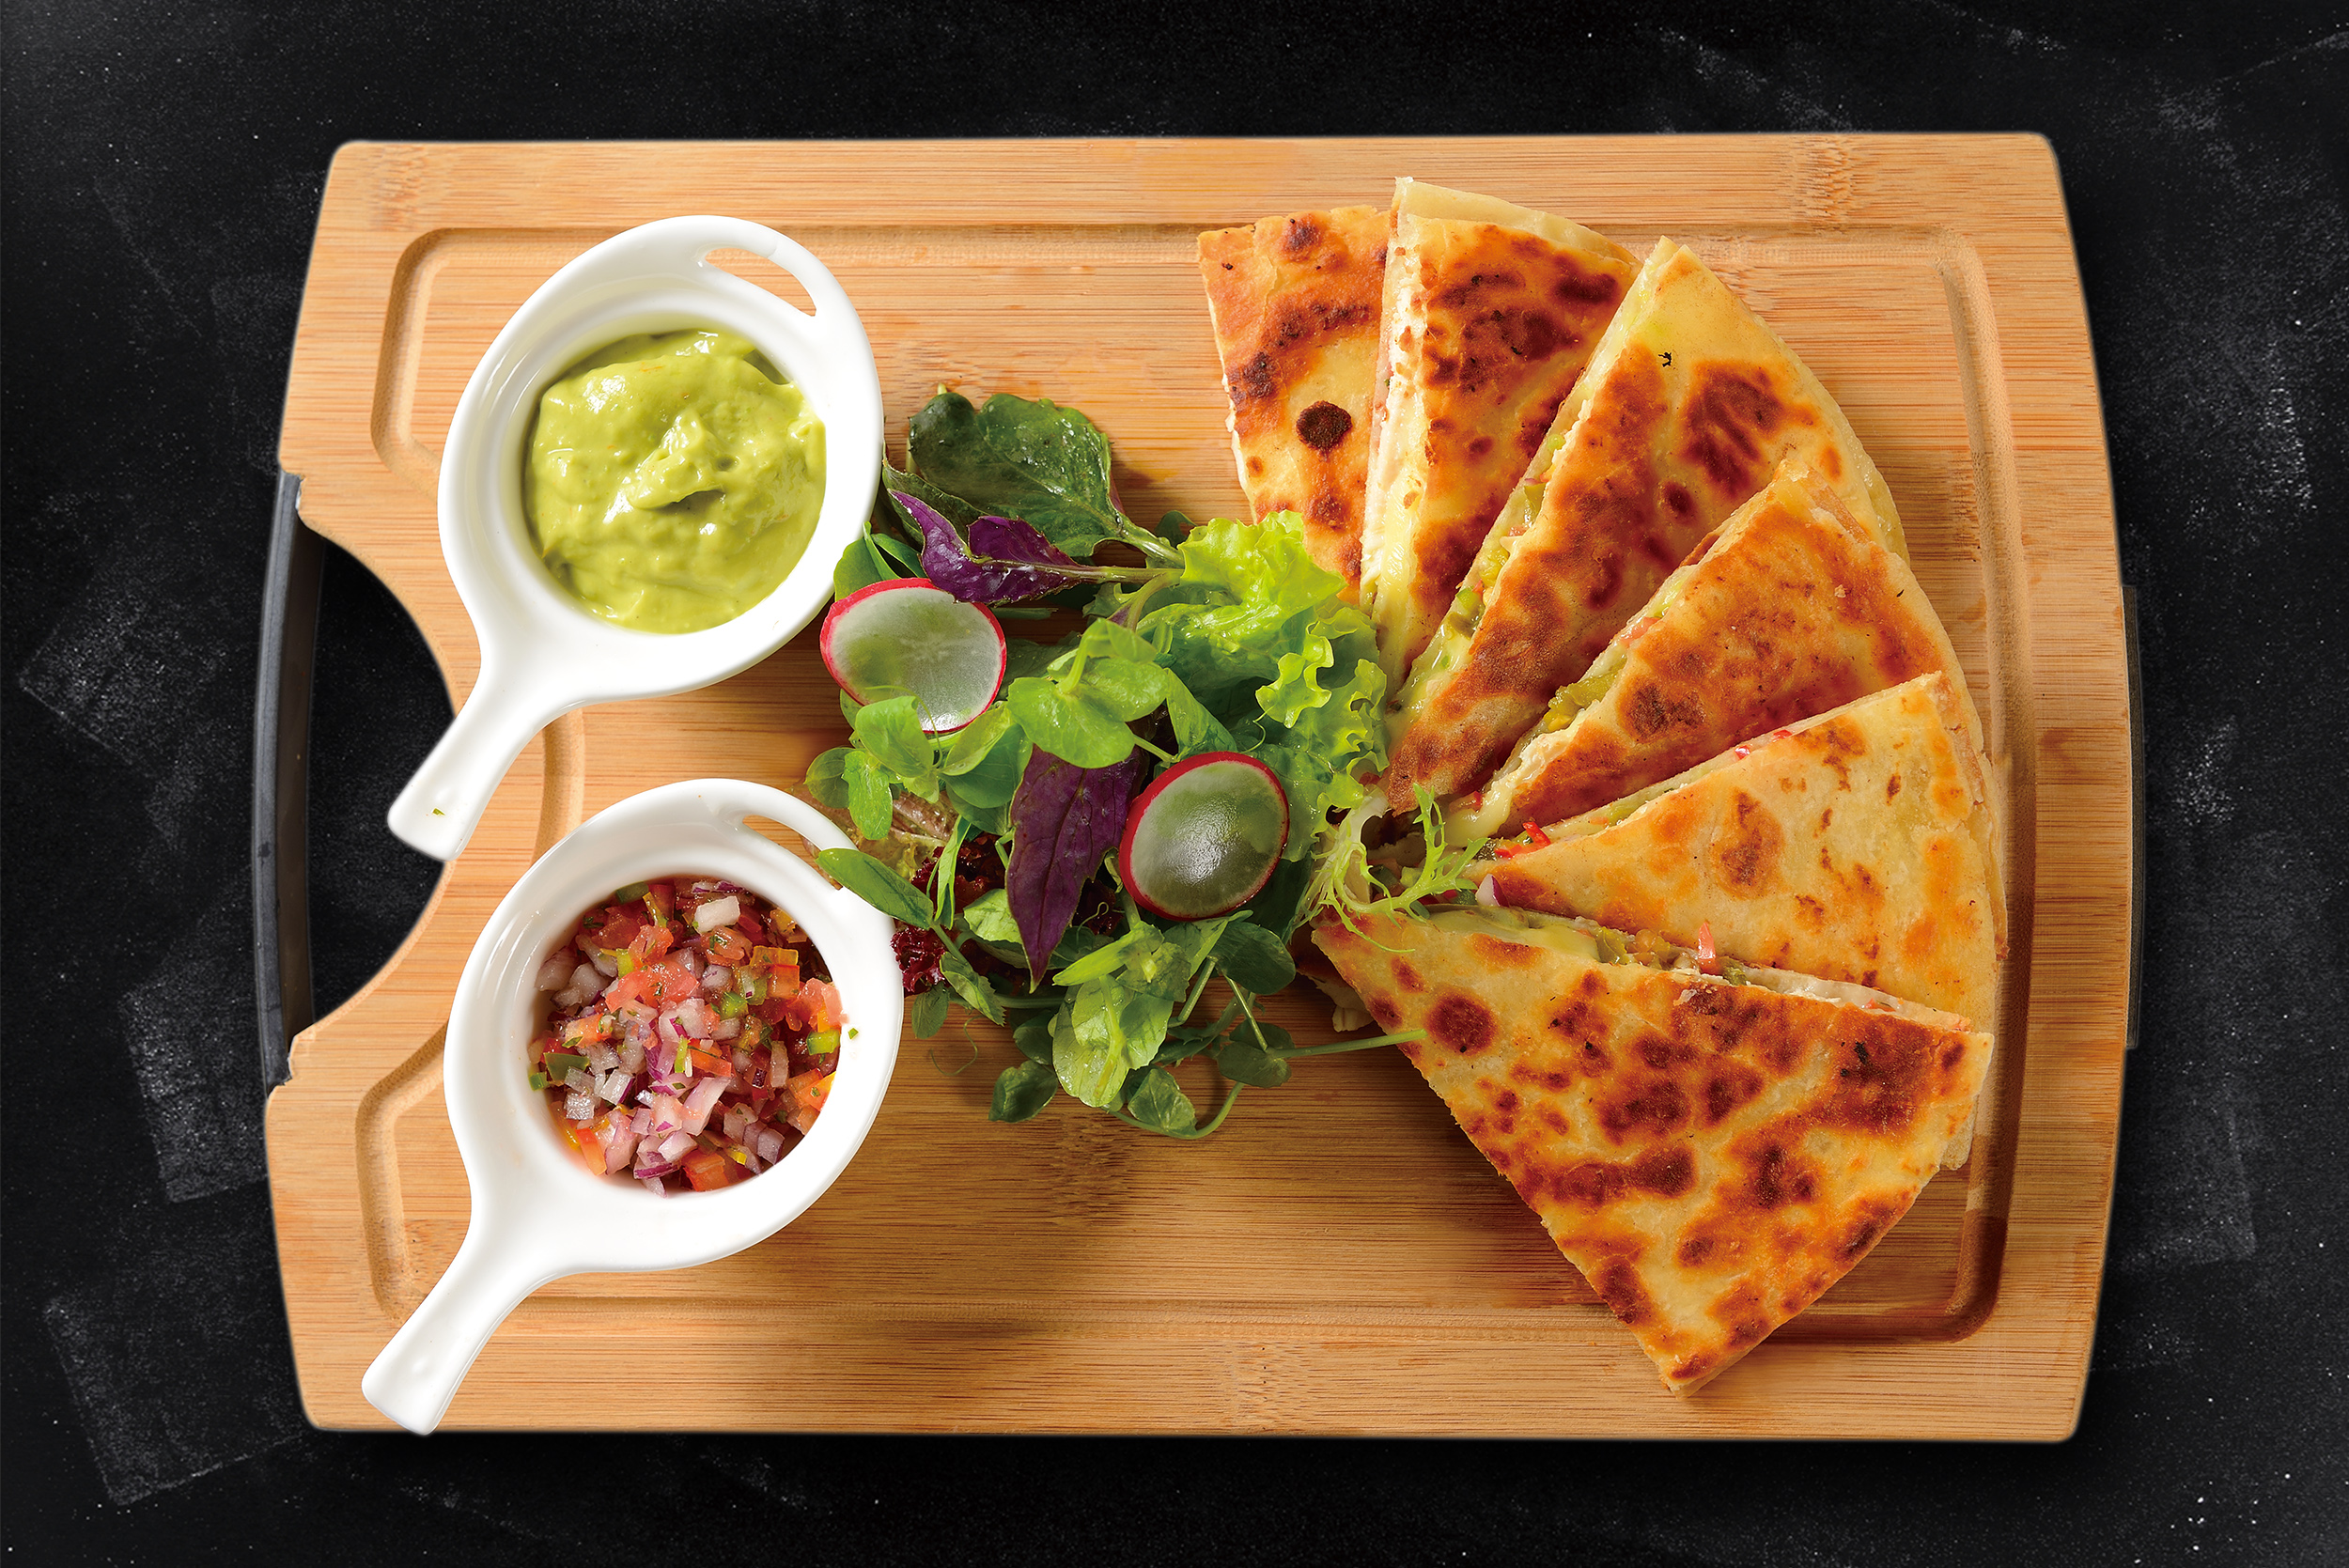 <b>Chicken Quesadillas</b><br/>Two Flour Tortillas stuffed with Mushrooms and